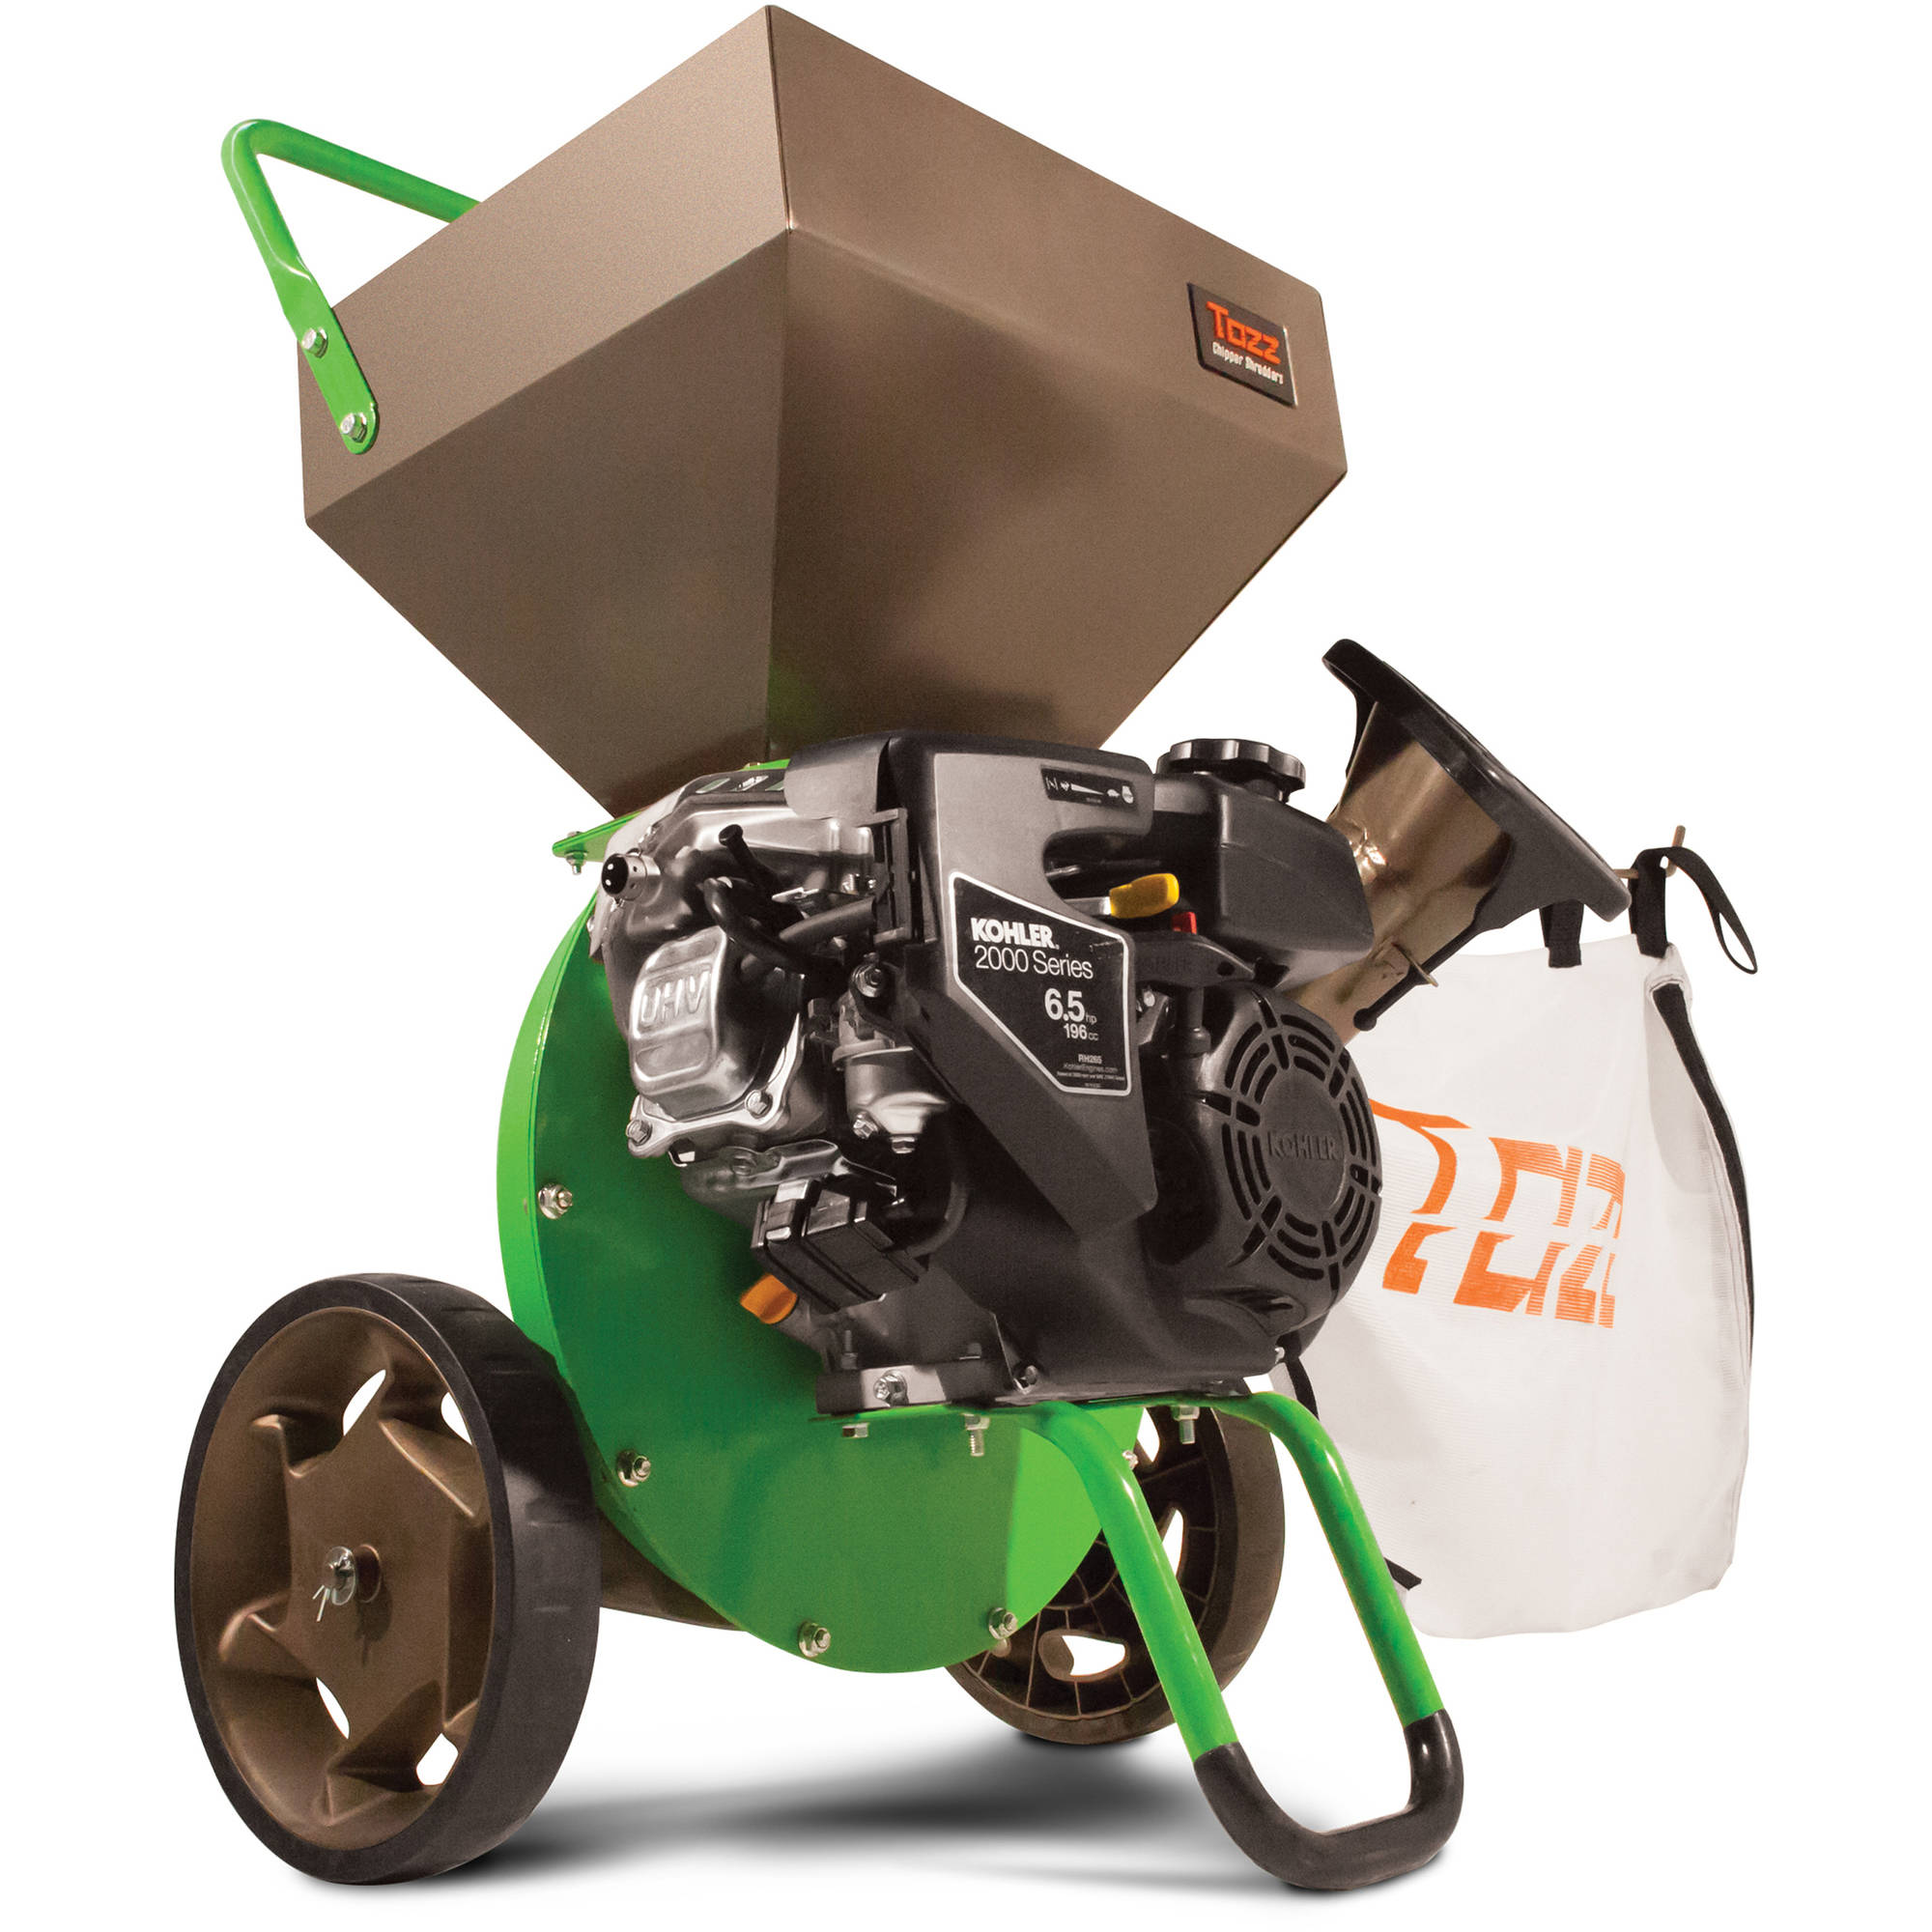 Tazz Chipper Shredders K52 Chipper Shredder with 196cc Kohler Engine, Green